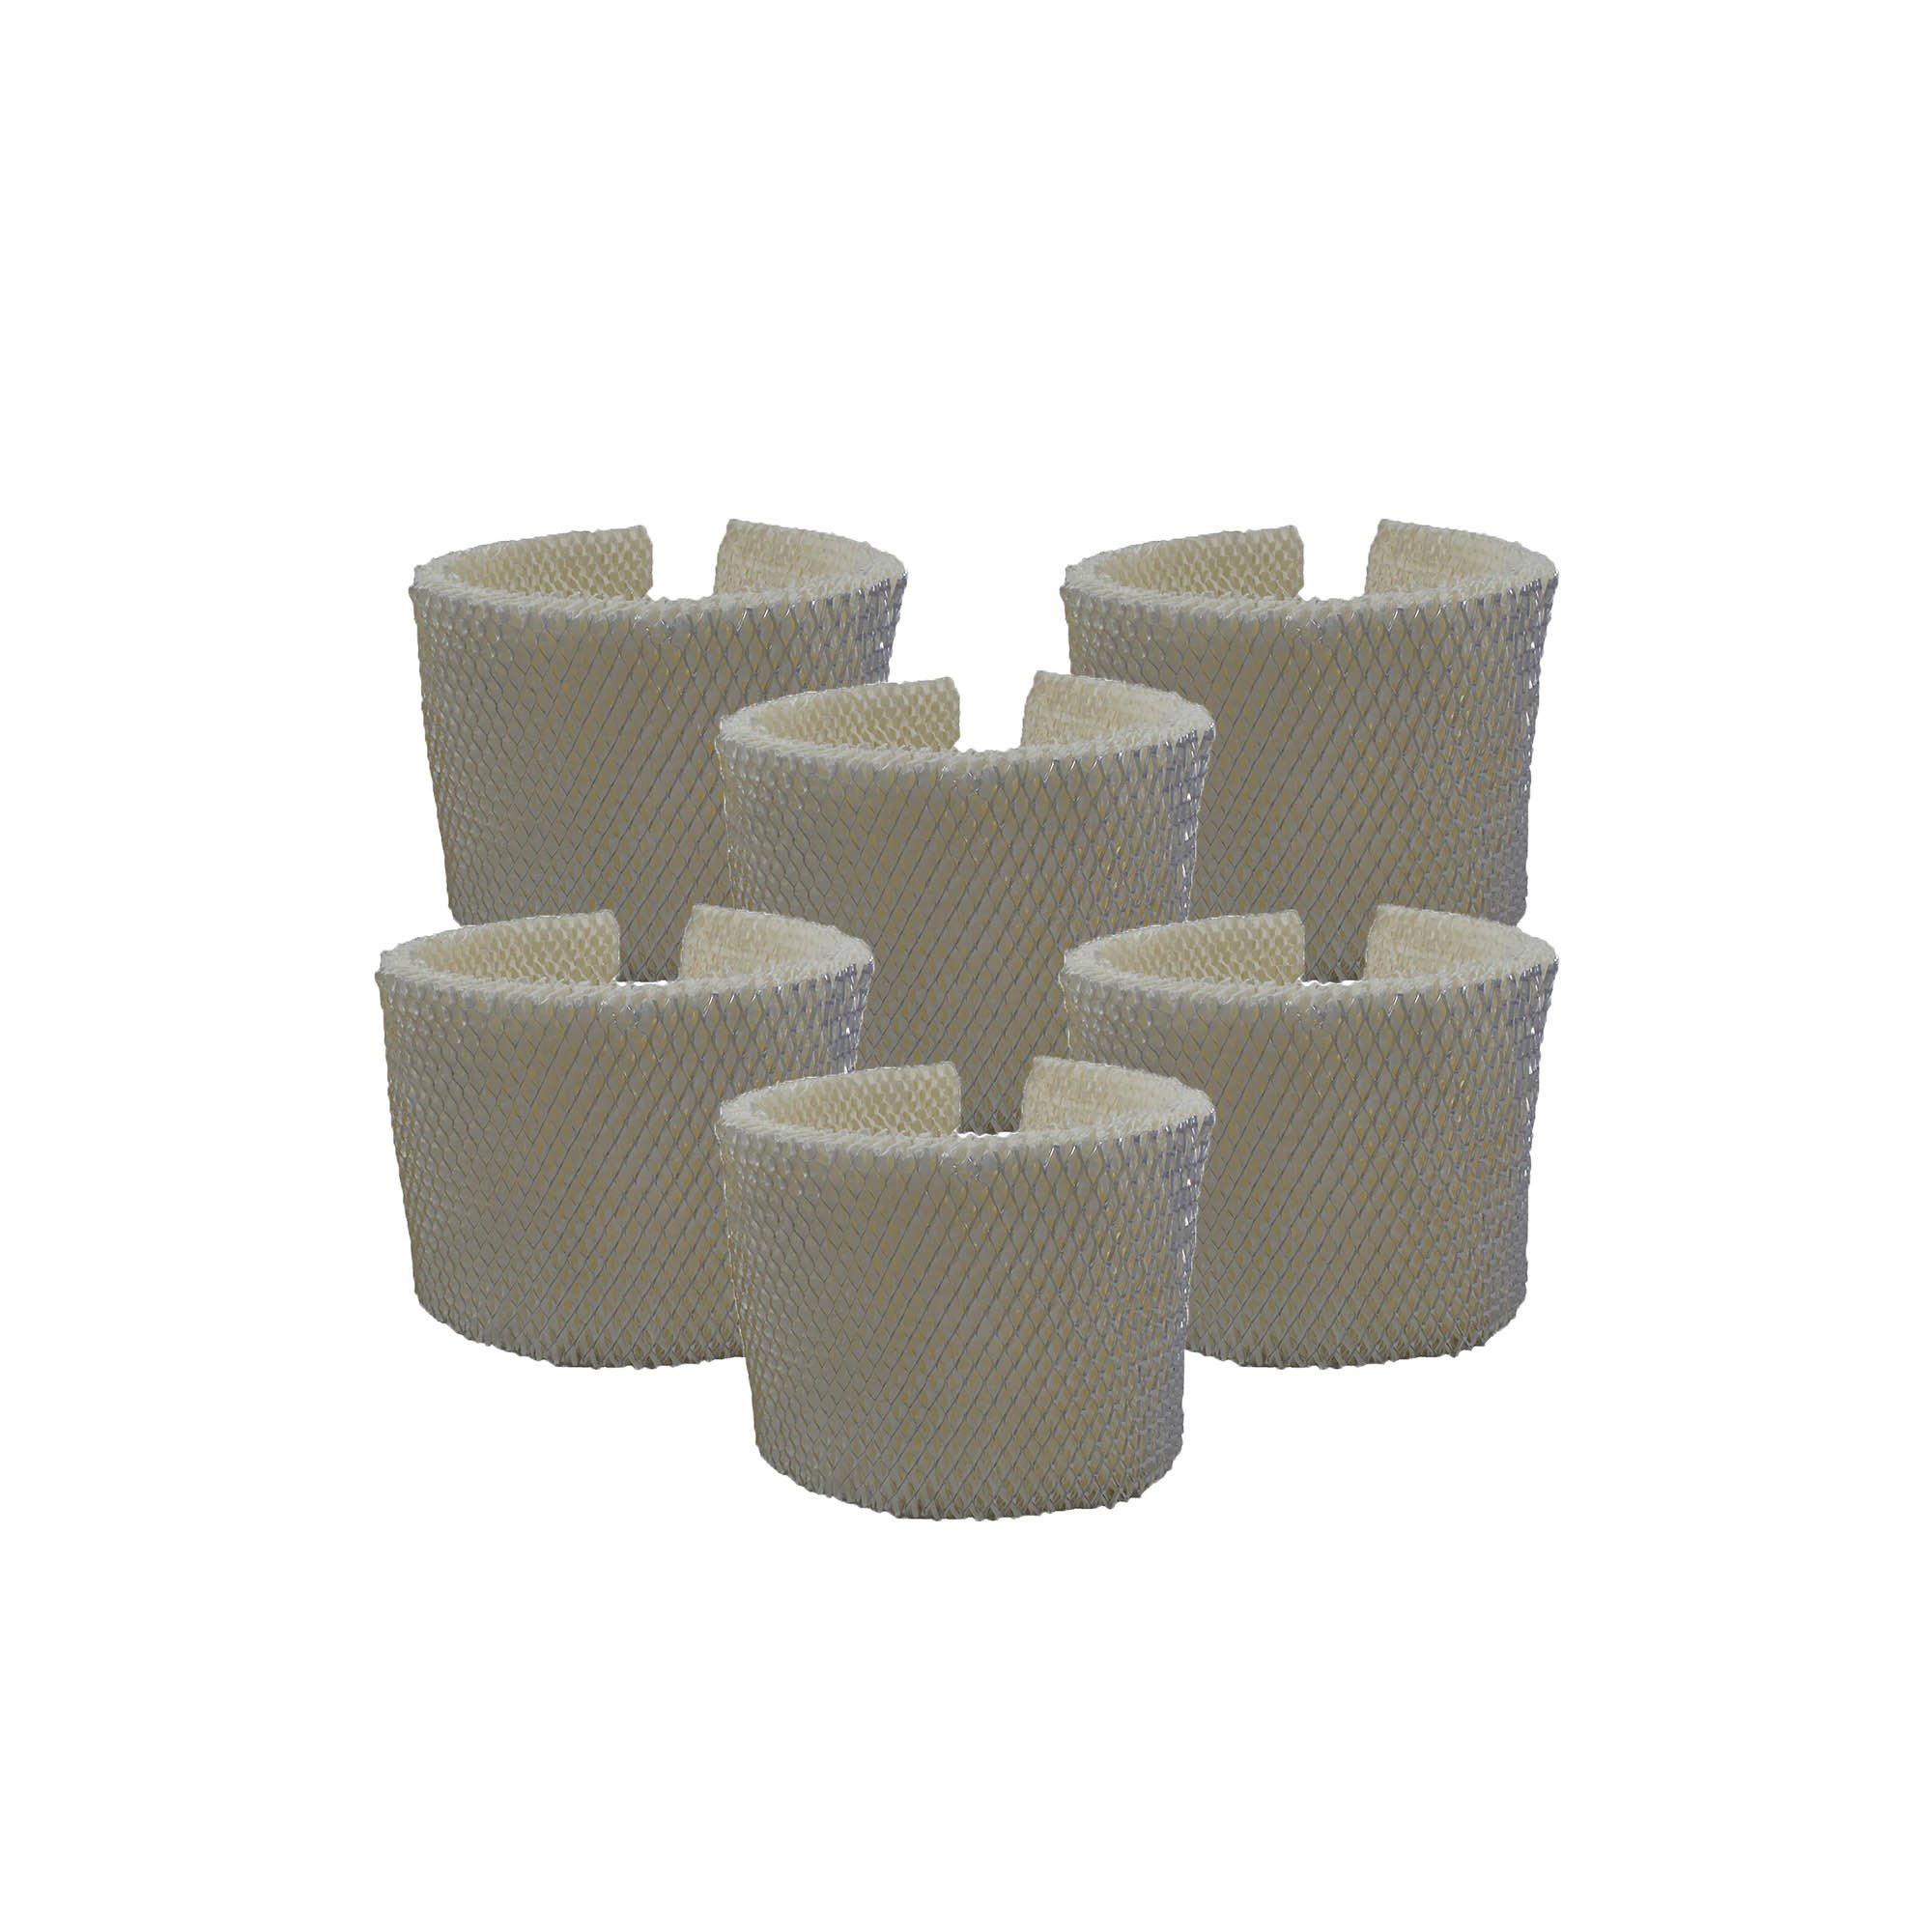 6 PACK Kenmore Humidifer Filter Replacements for 14906 by Air Filter Factory